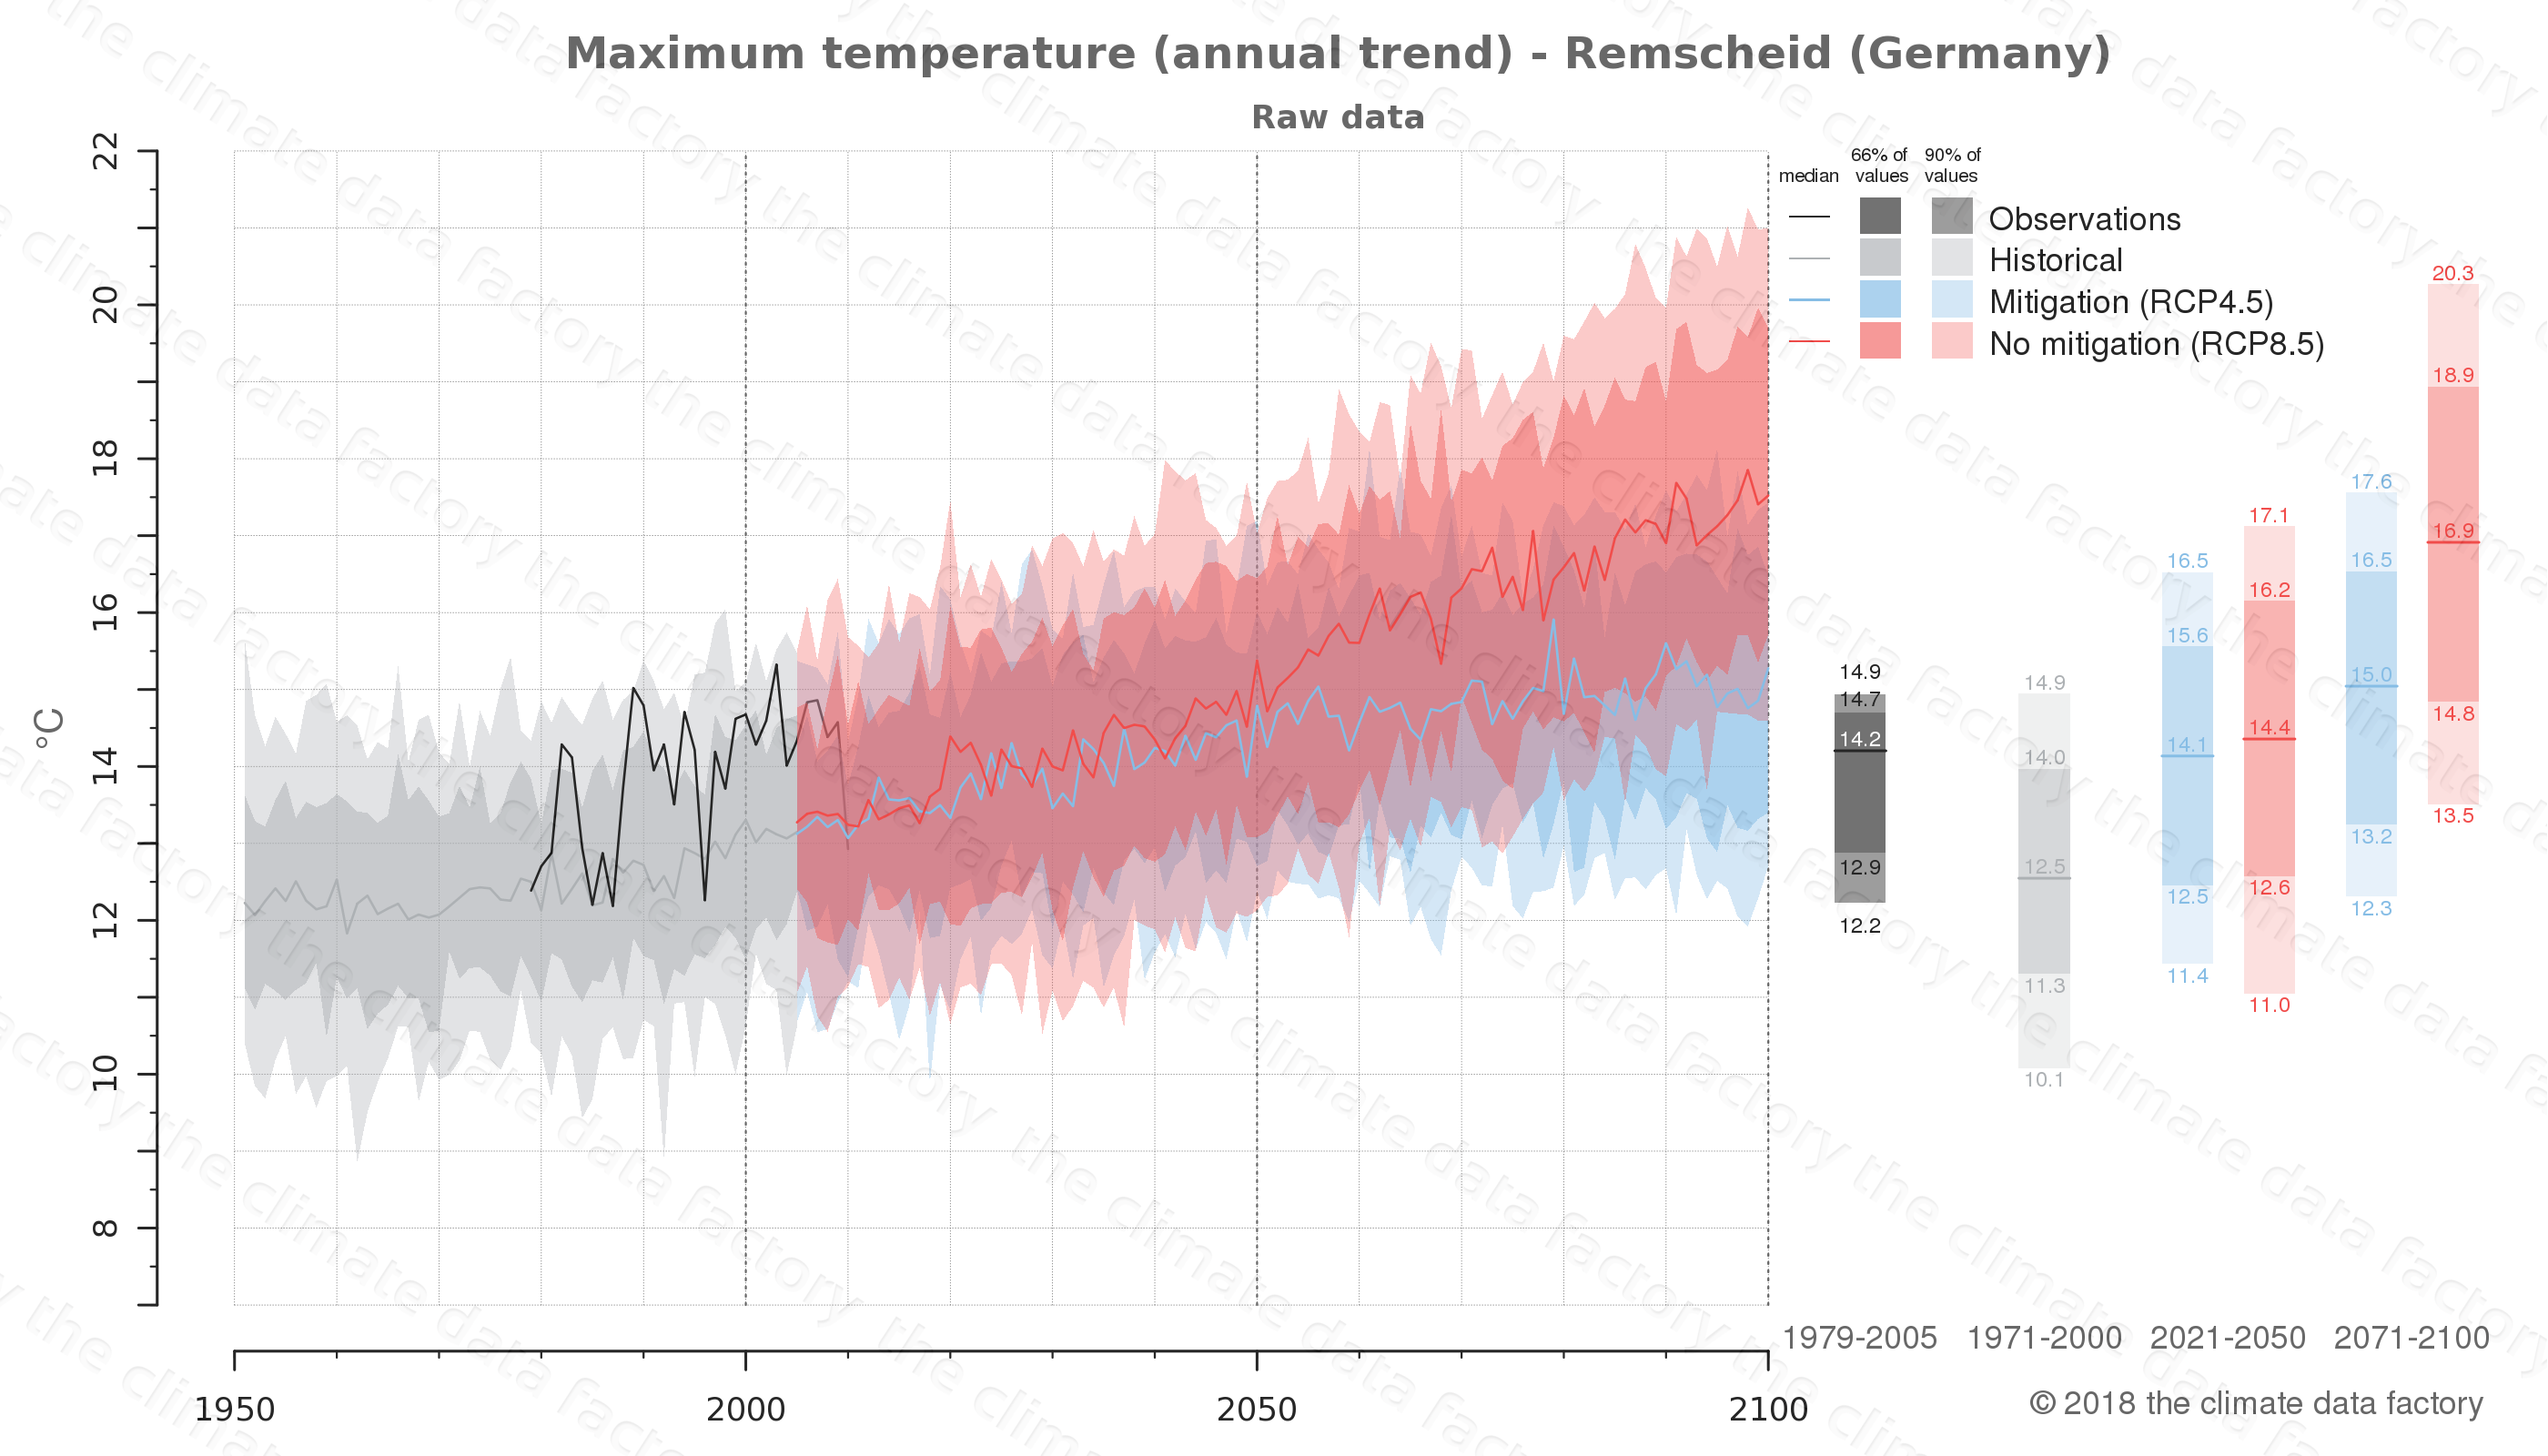 climate change data policy adaptation climate graph city data maximum-temperature remscheid germany